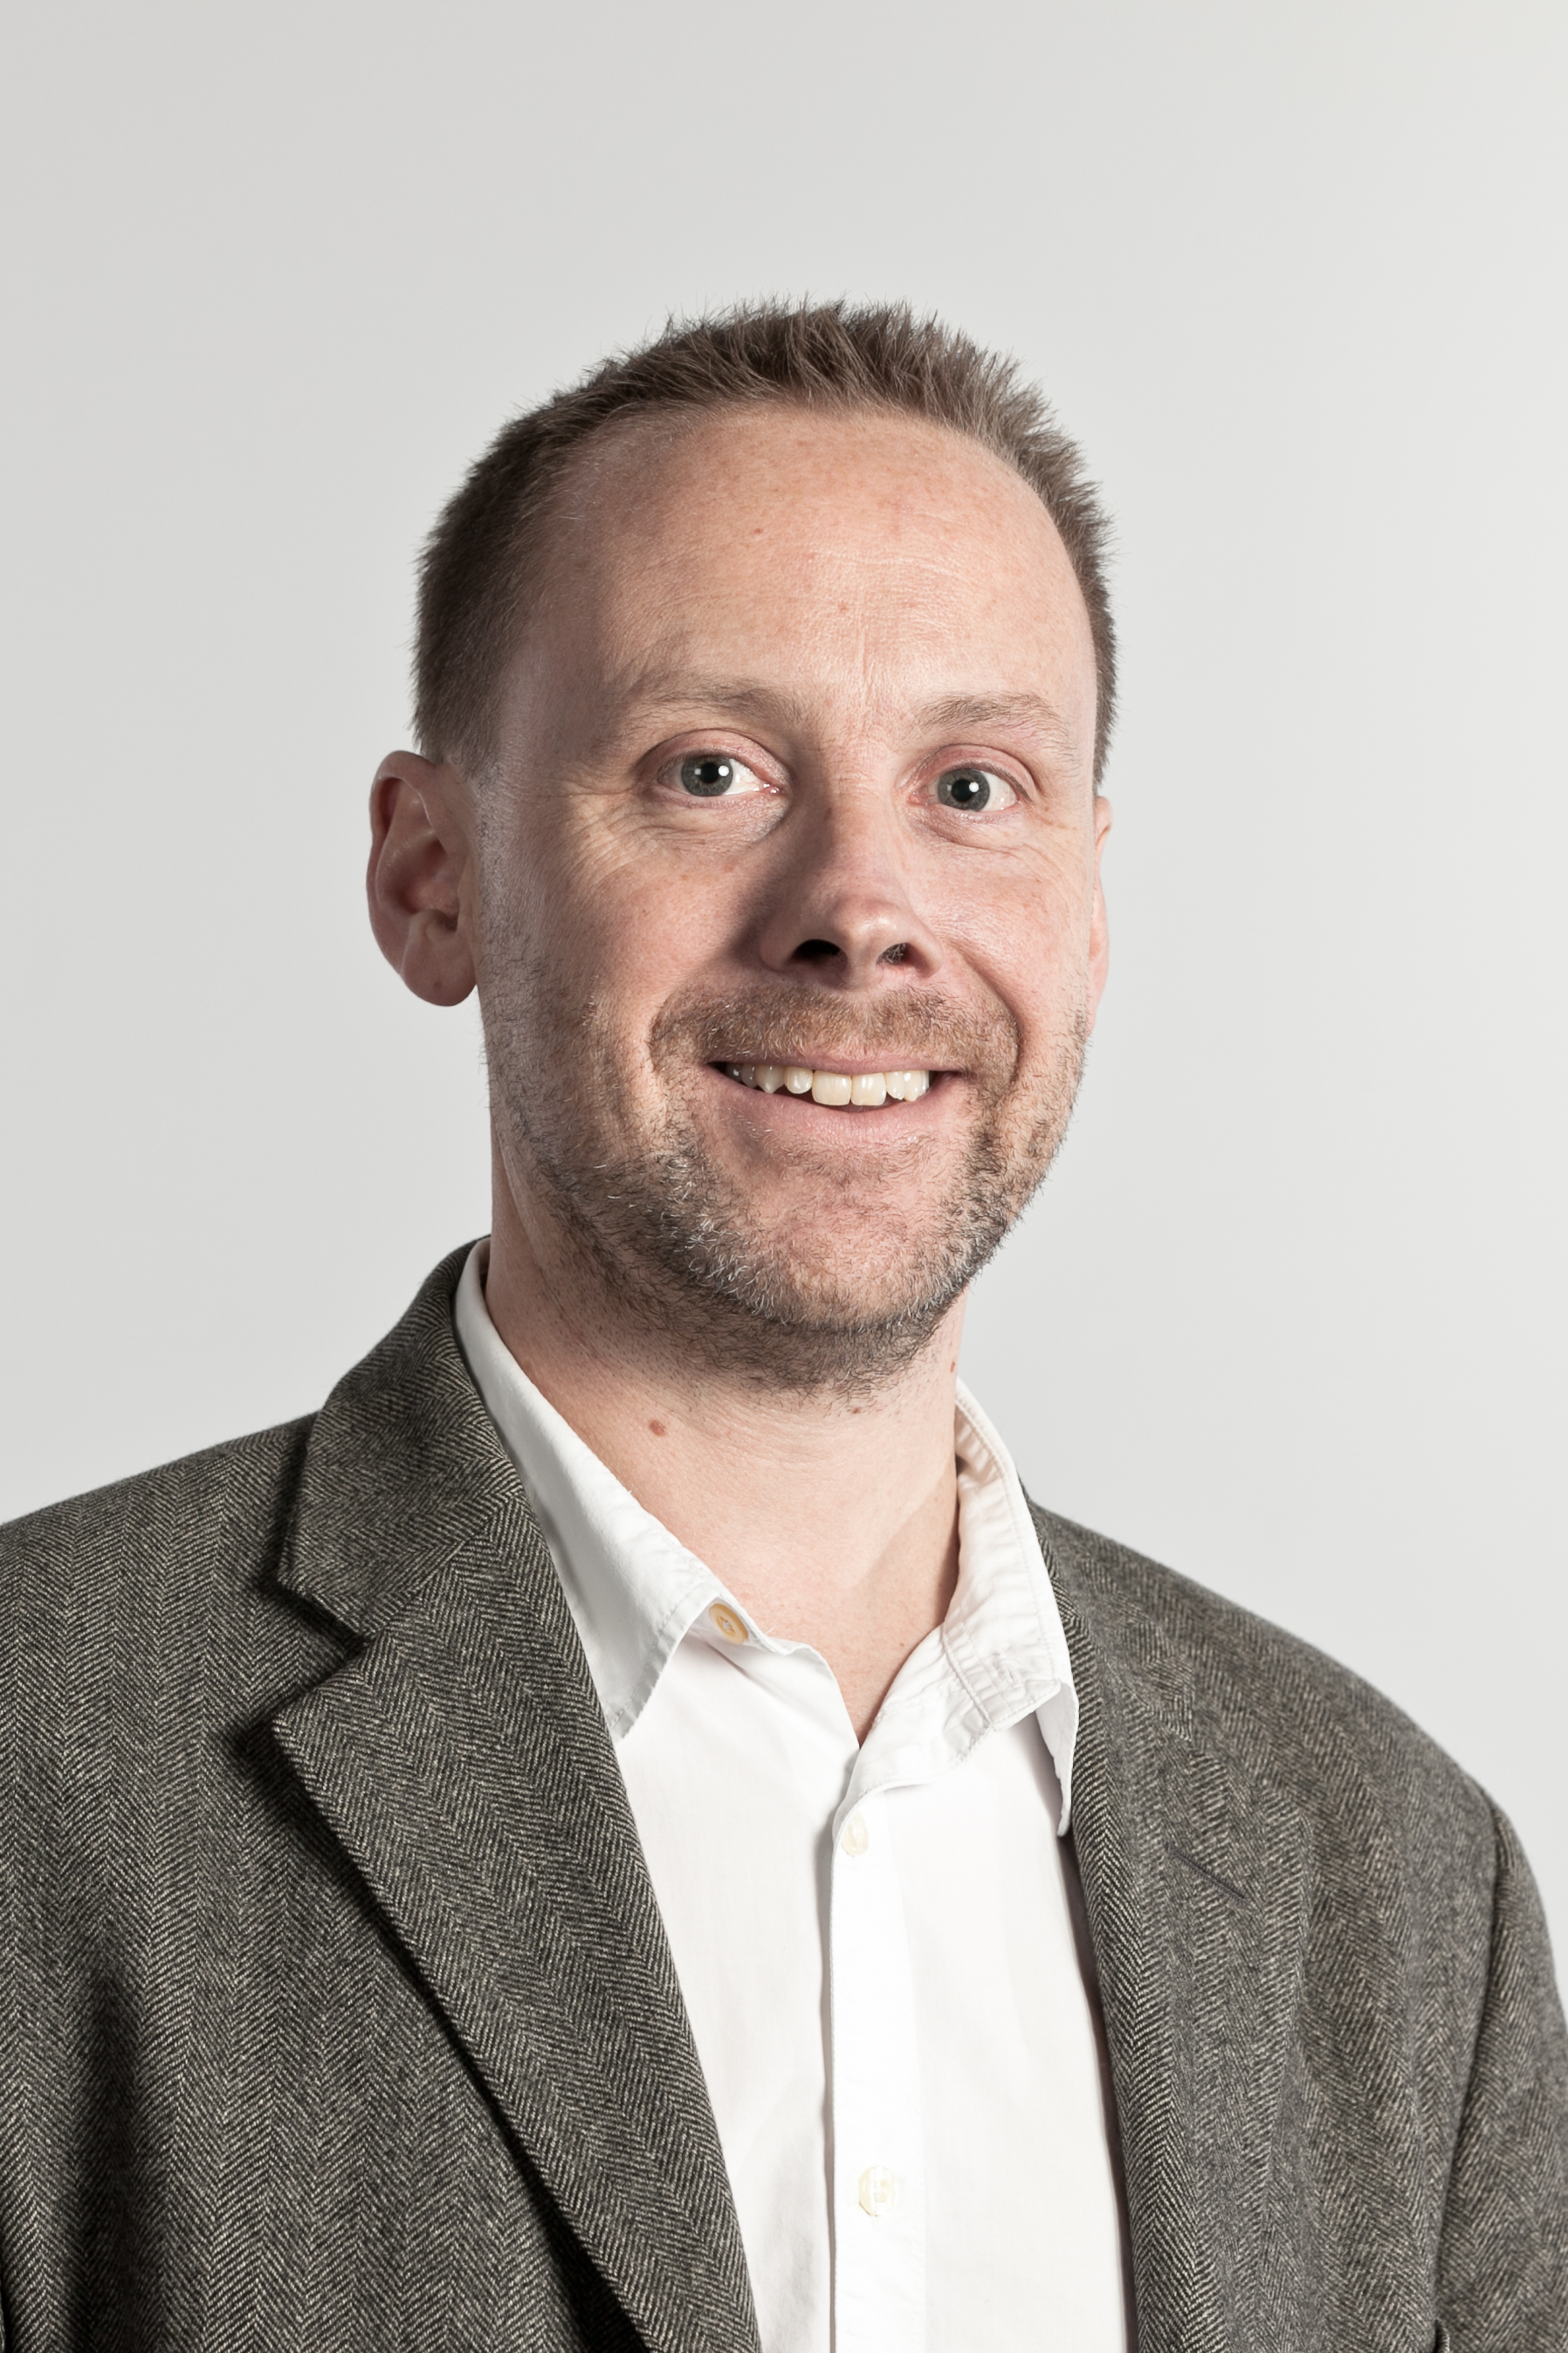 Staff - James Lindsay - Blizard Institute - Barts and The London